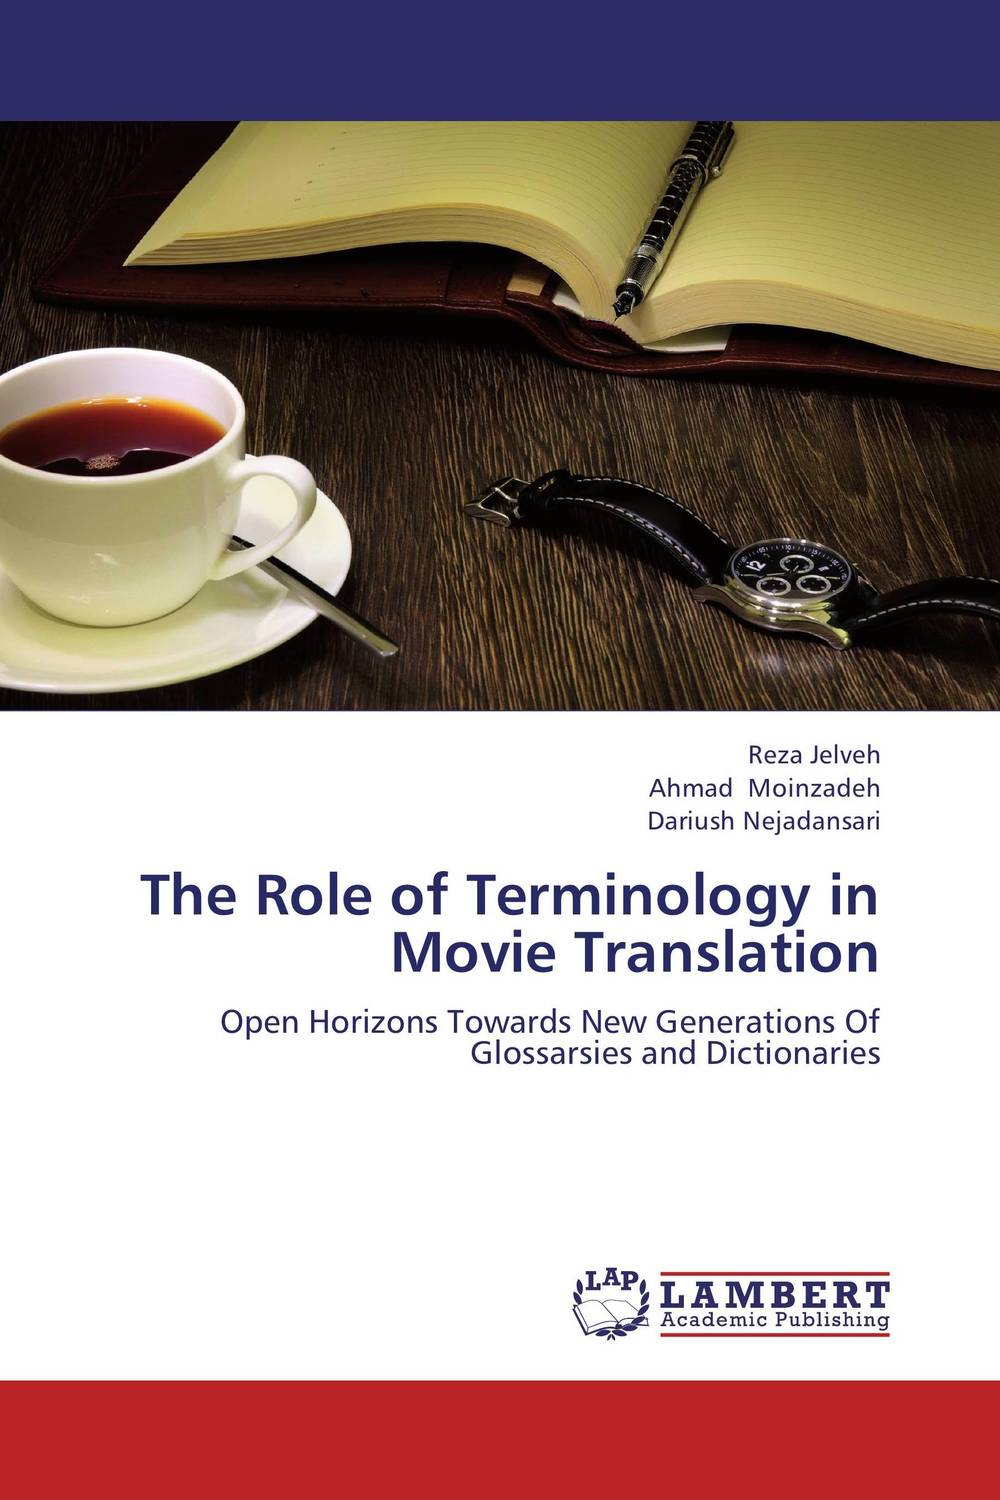 The Role of Terminology in Movie Translation